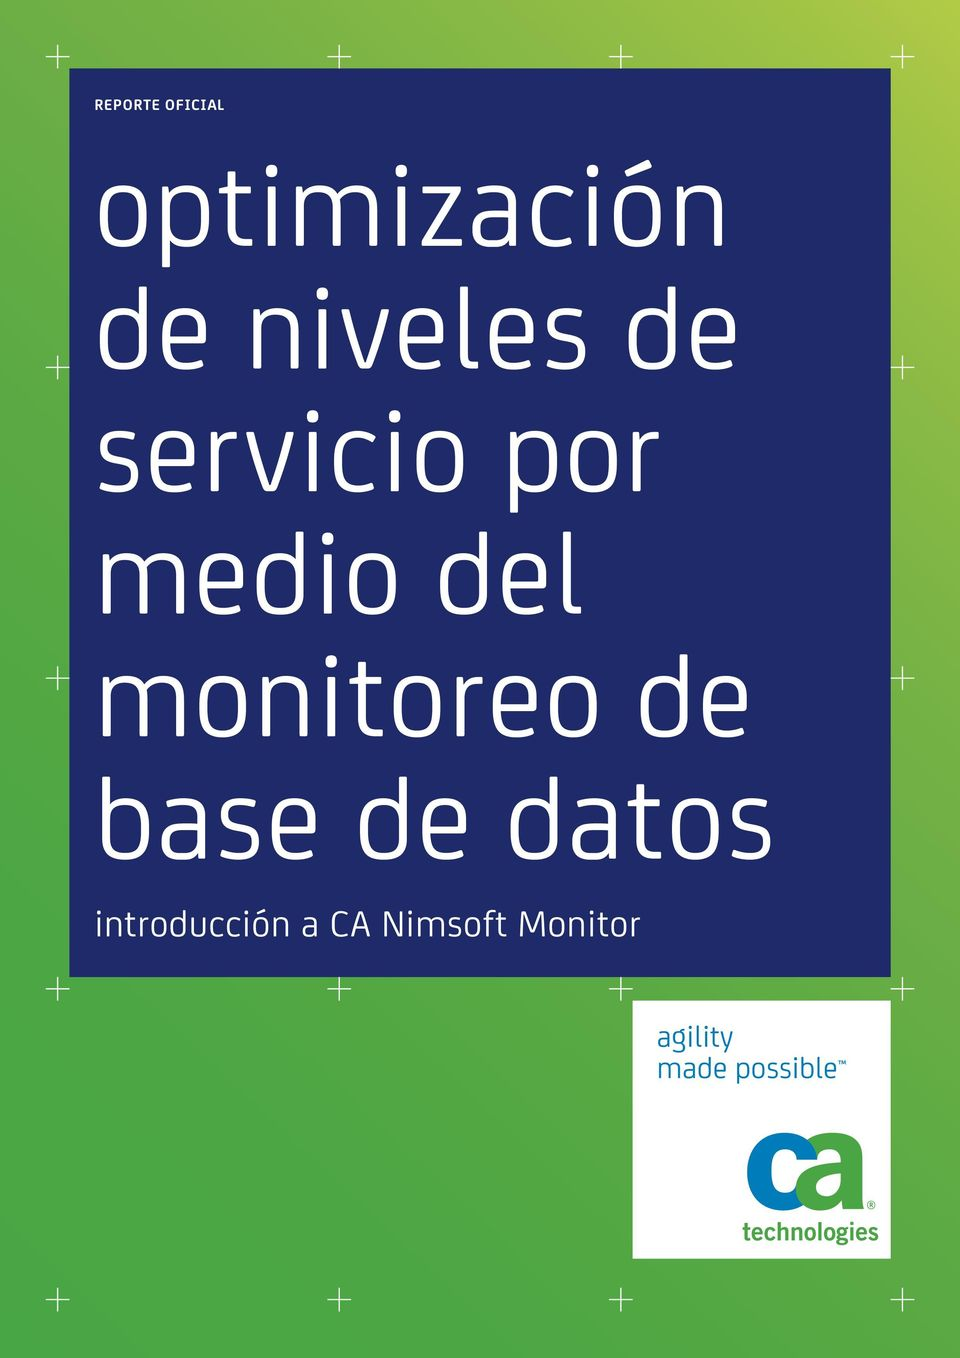 monitoreo de base de datos